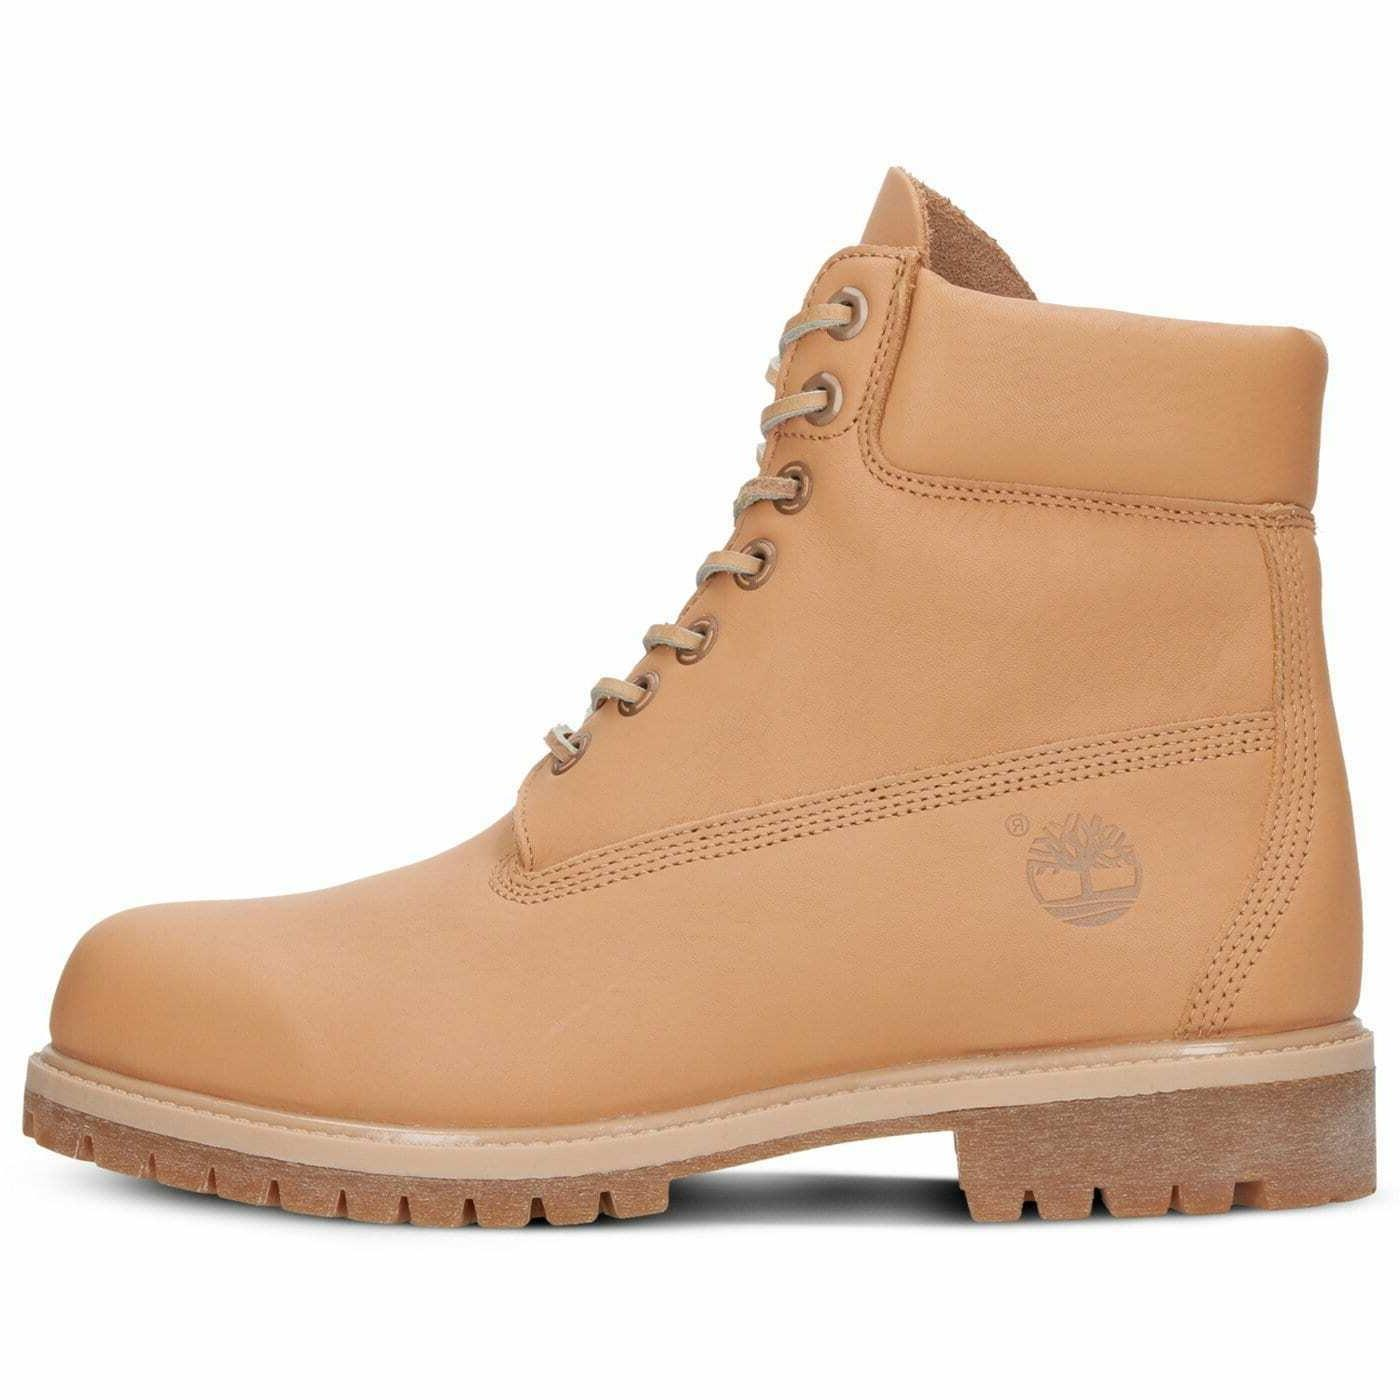 Release Premium Horween Leather Natural Boots A1JJB